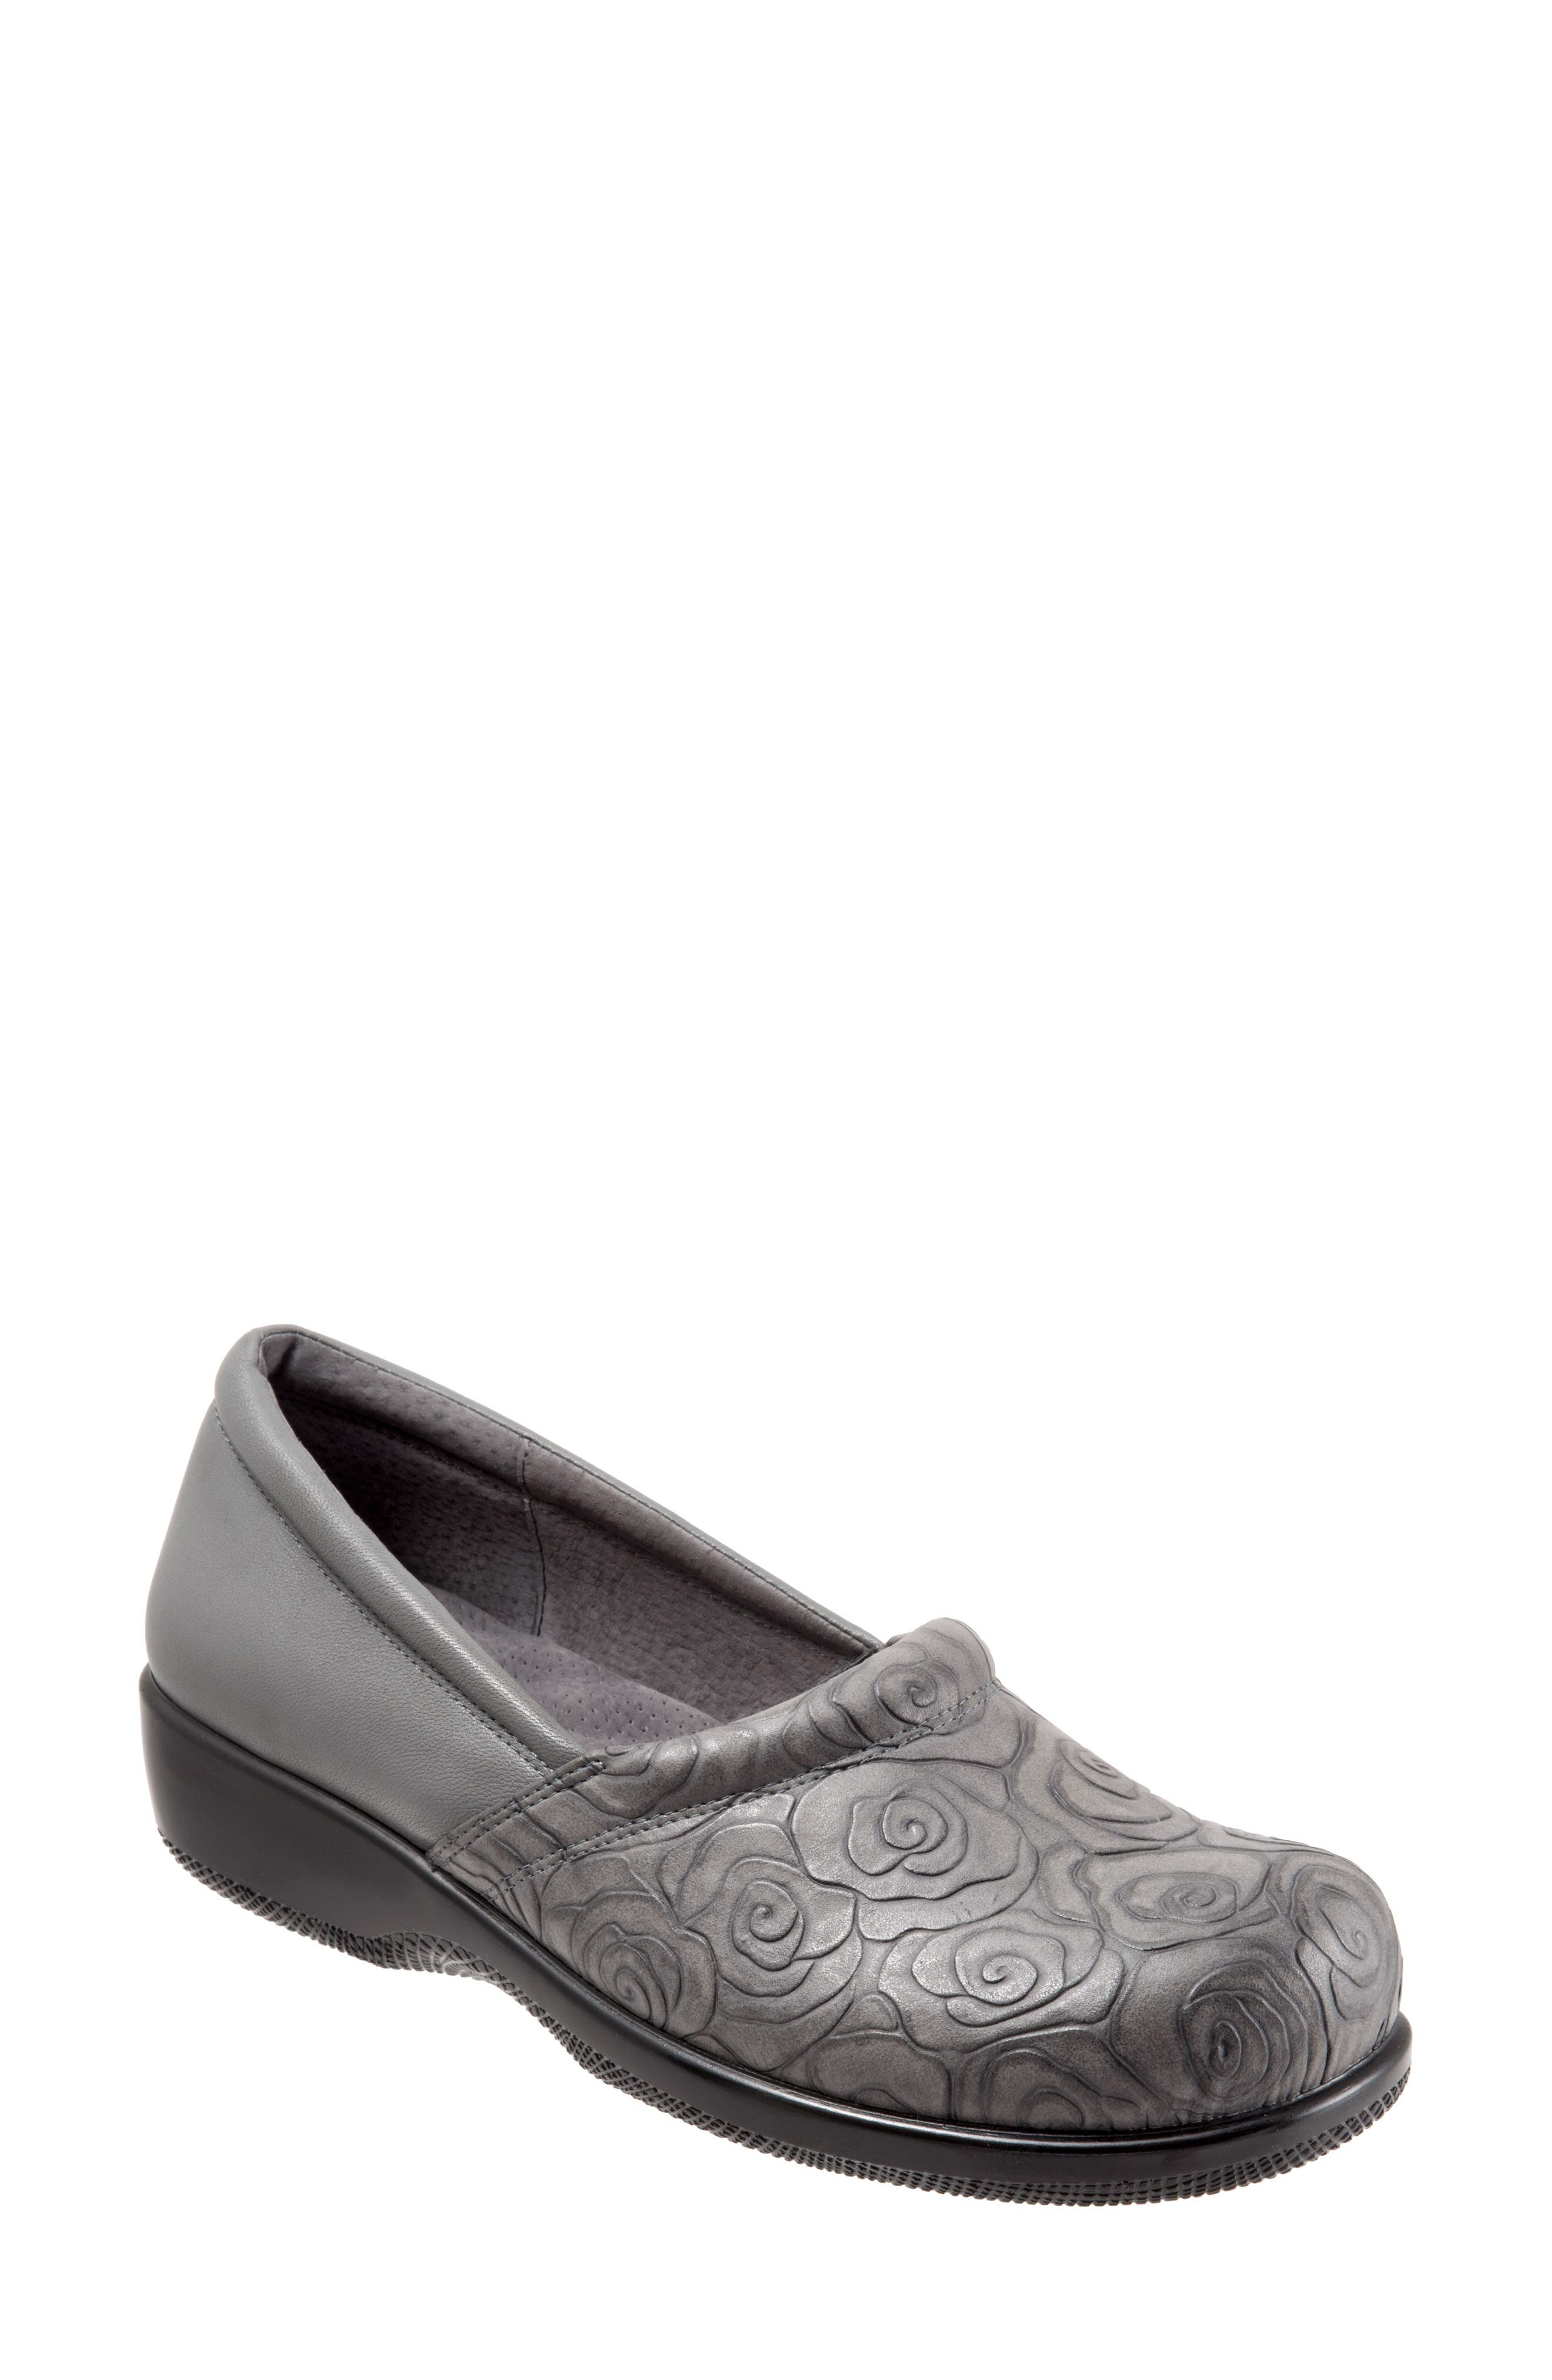 'Adora' Slip-On,                             Alternate thumbnail 6, color,                             GREY ROSE LEATHER